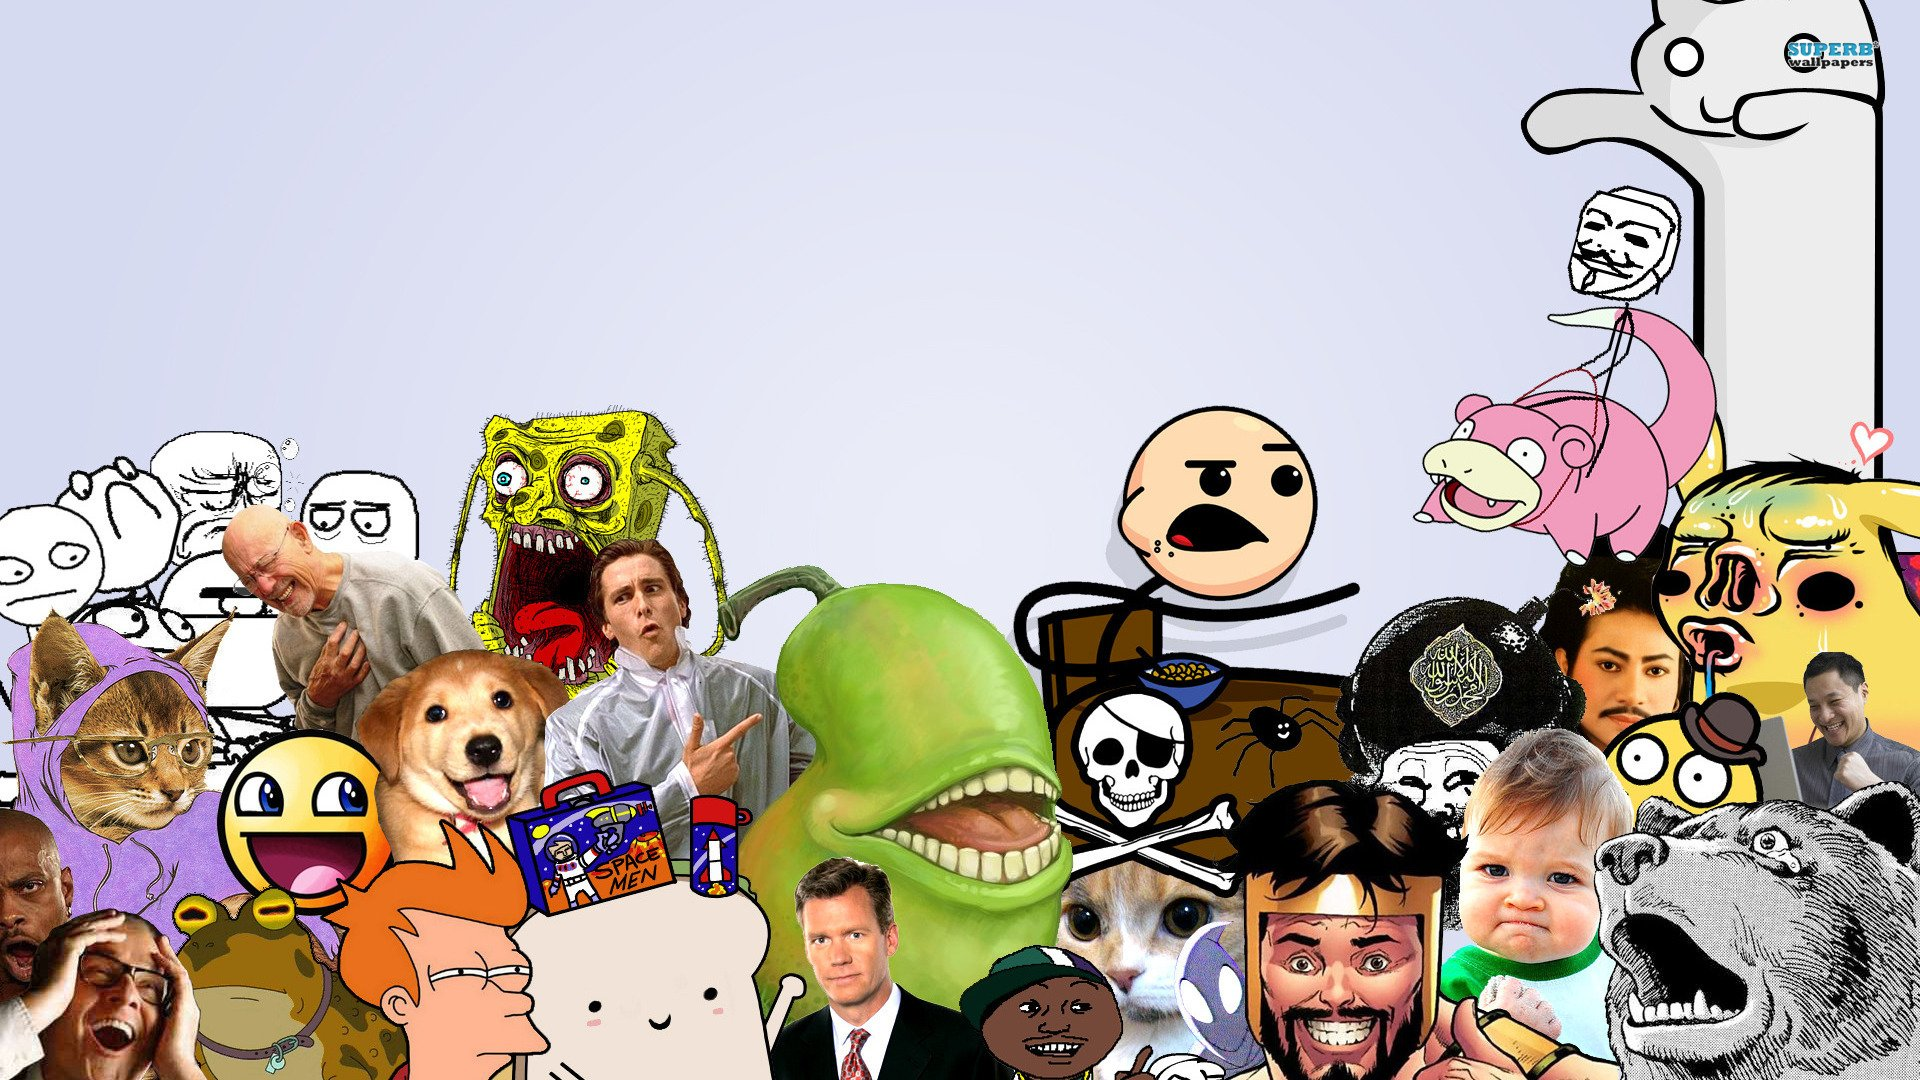 Meme Wallpaper   Memes Wallpaper 30218798 1920x1080